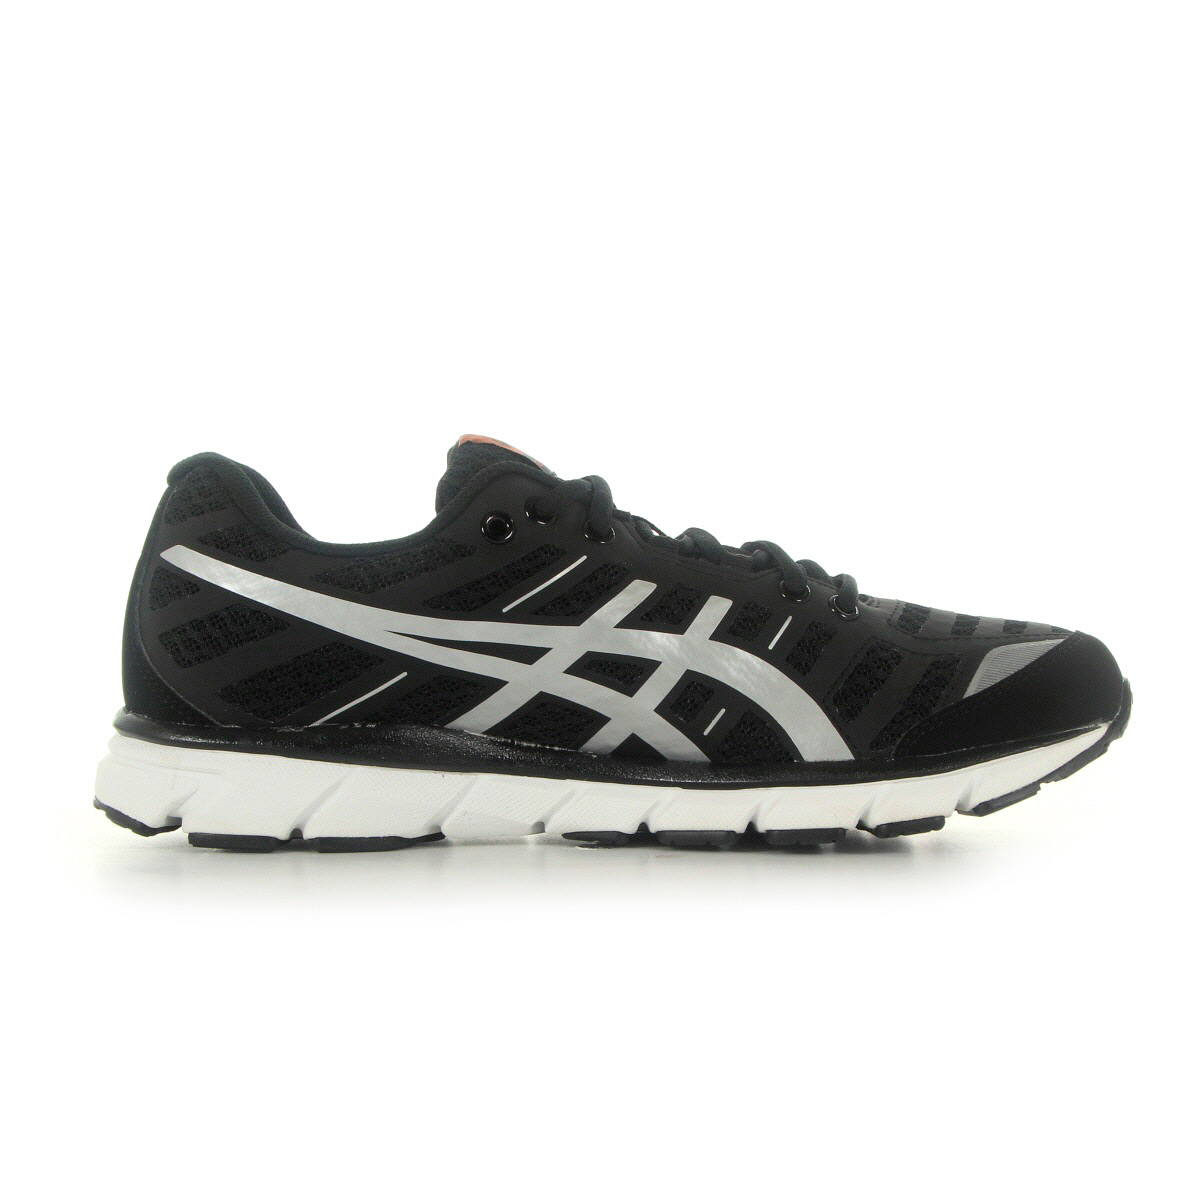 chaussures asics homme gel zaraca 2 running taille noir noire textile lacets ebay. Black Bedroom Furniture Sets. Home Design Ideas